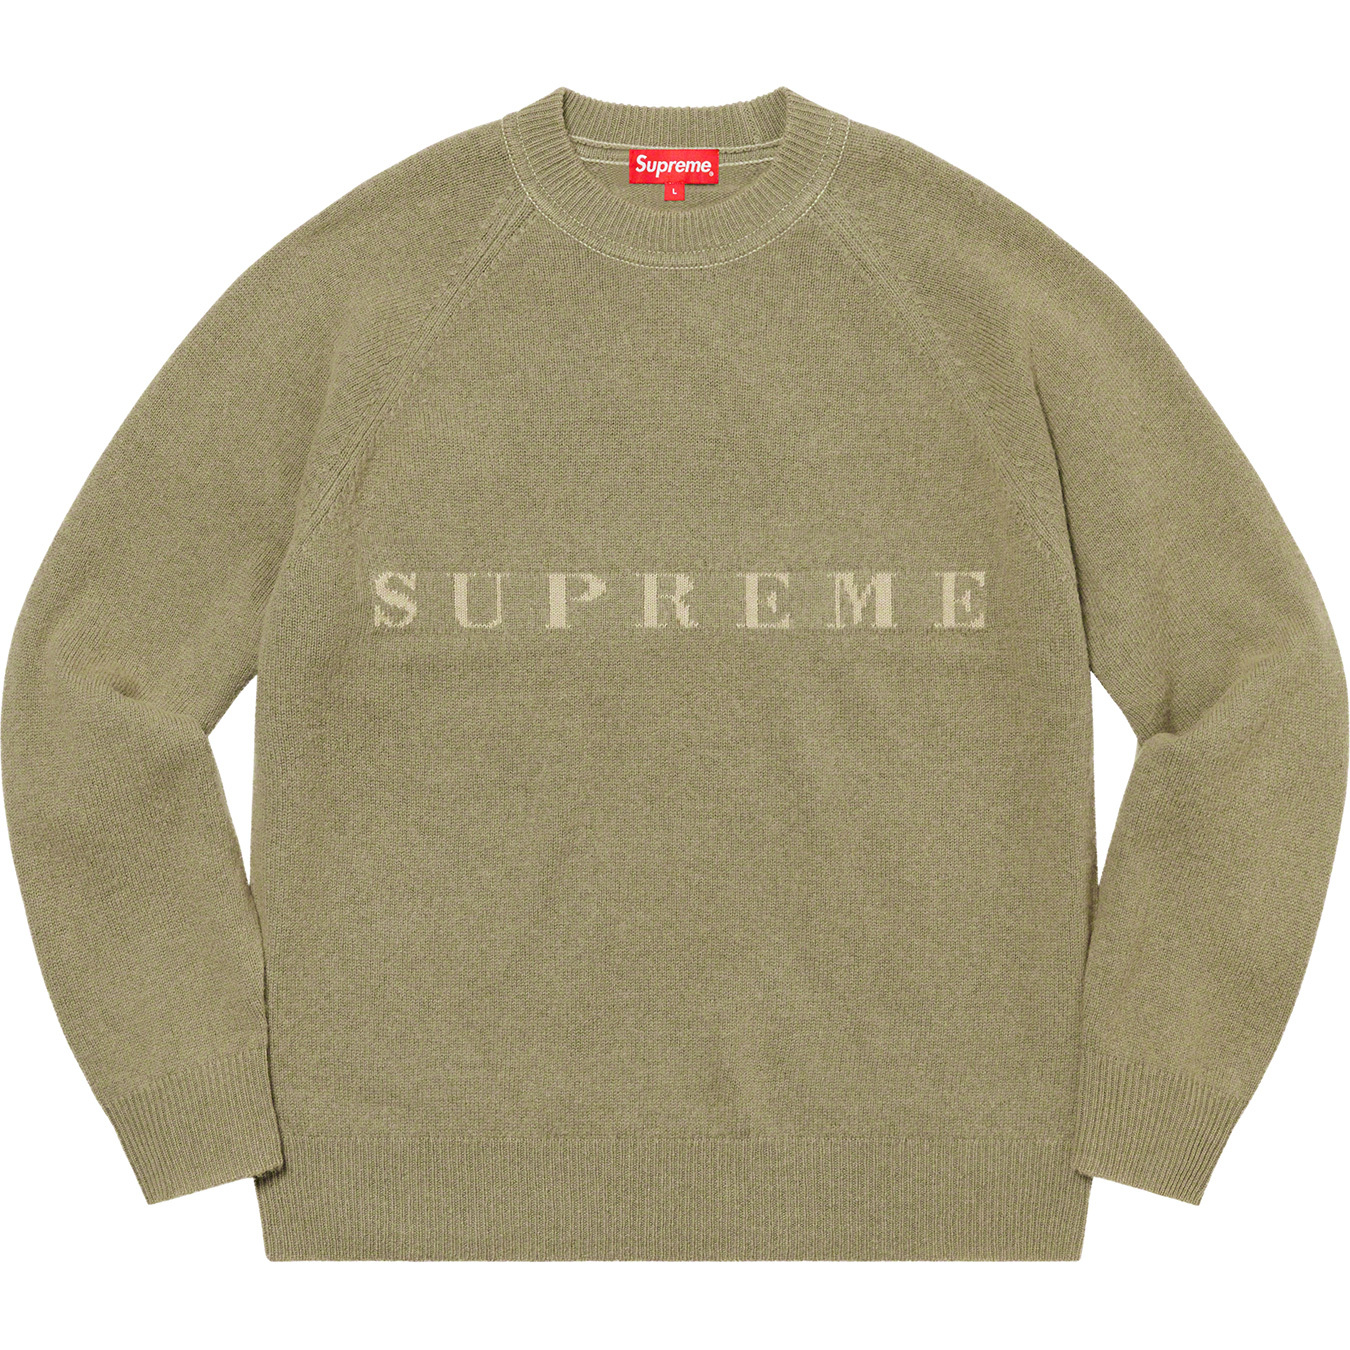 supreme-20aw-20fw-stone-washed-sweater